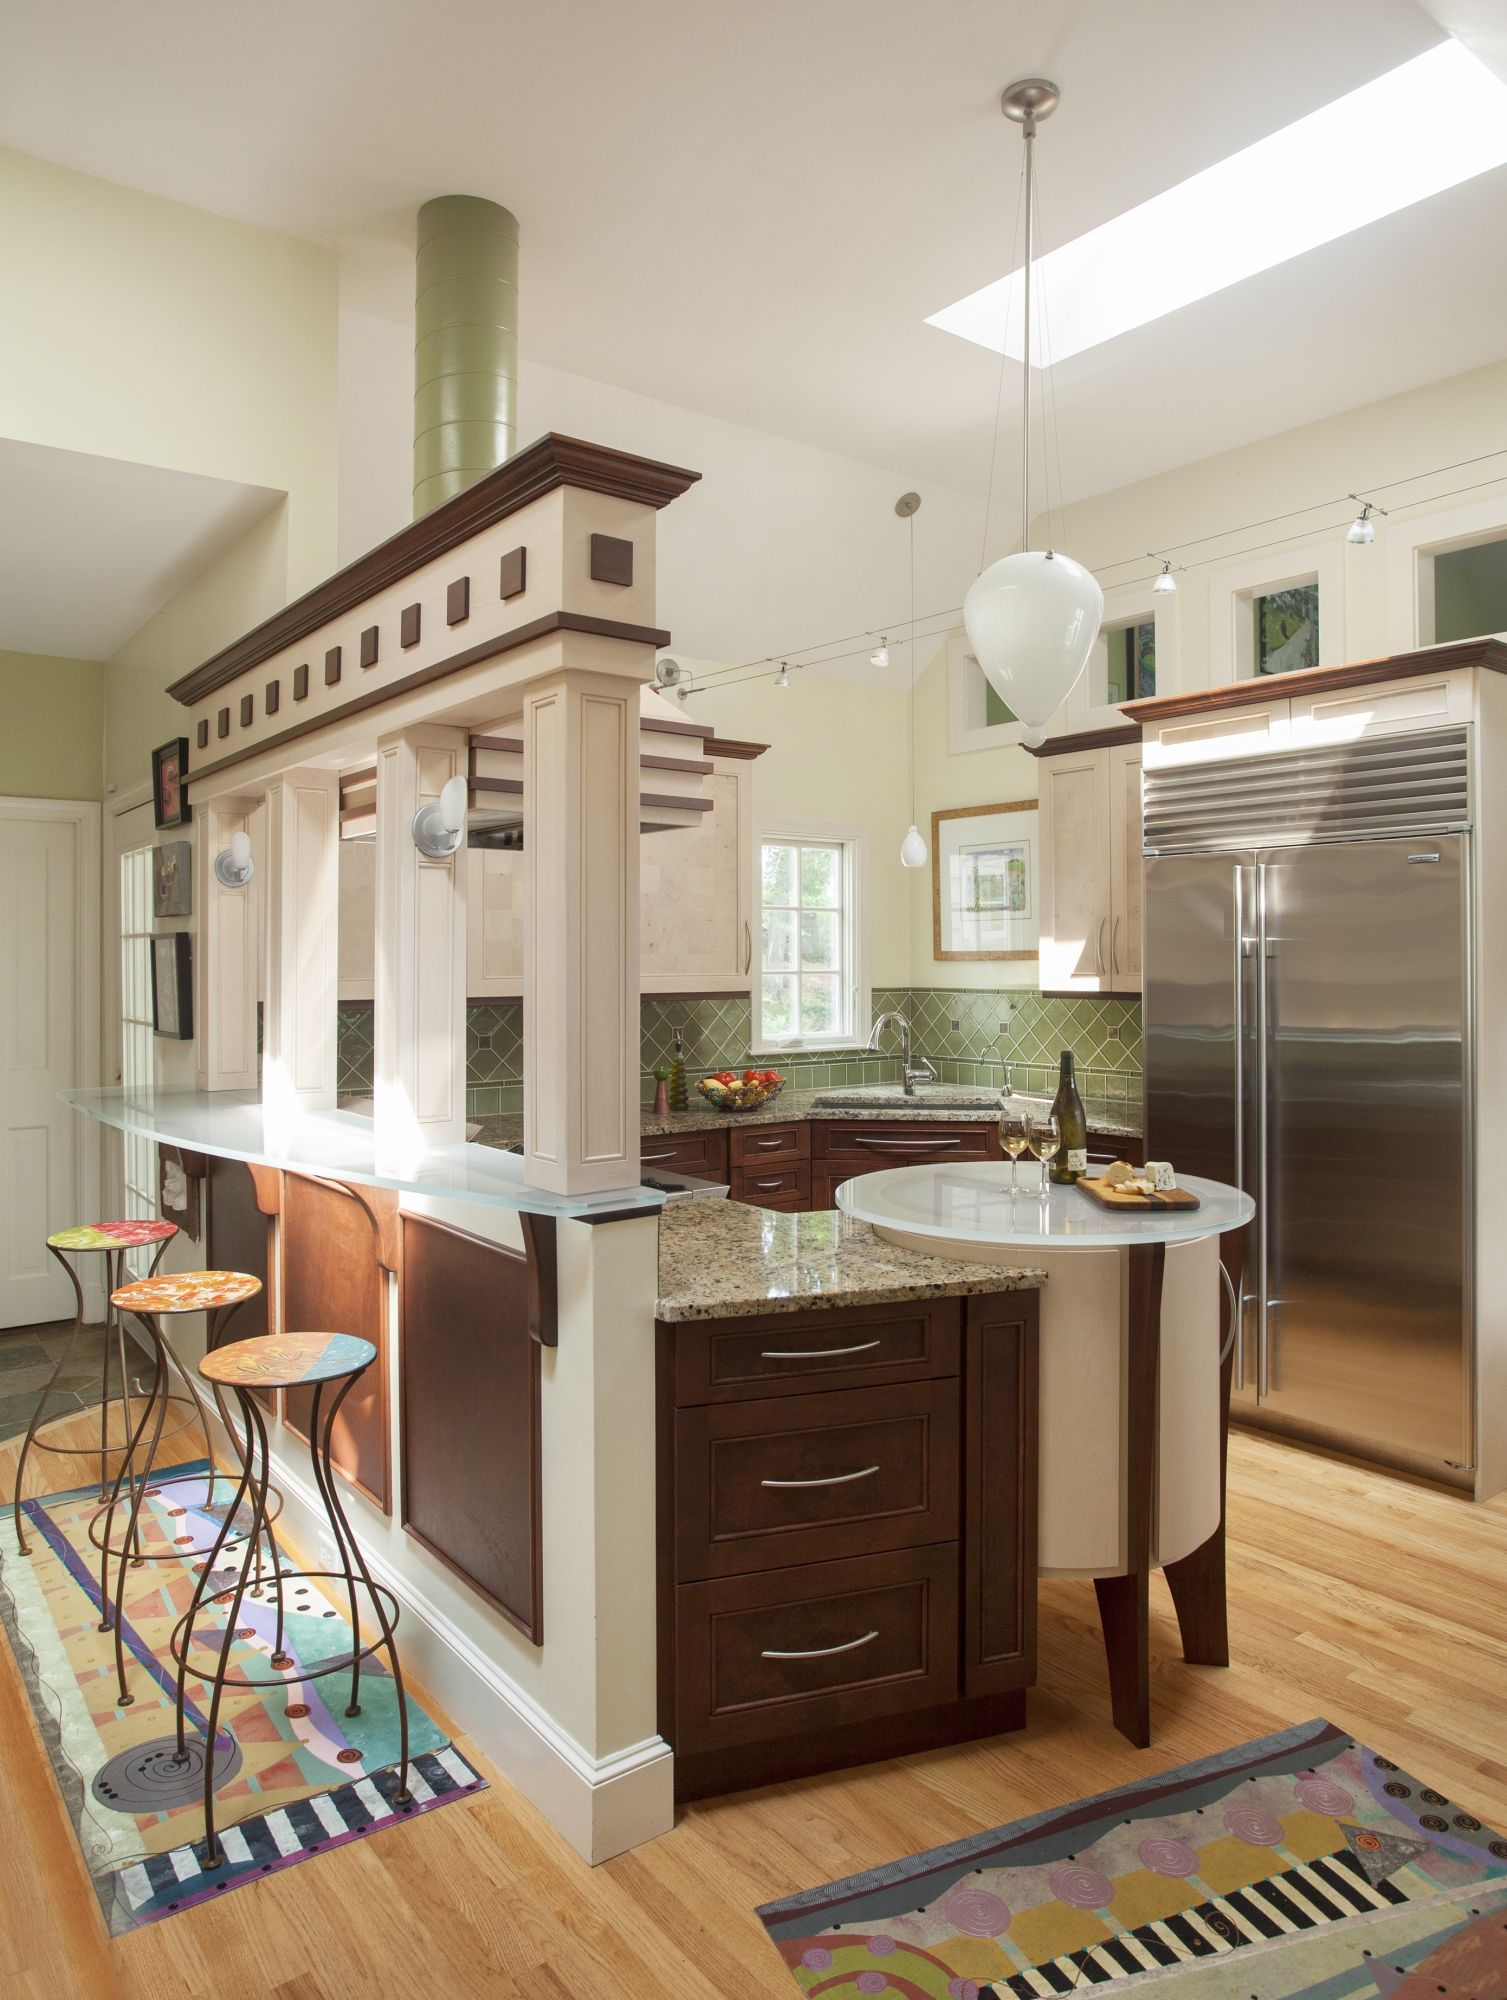 Art Deco Kitchen Art Deco Kitchens Art Deco Kitchen This Beautiful Bespoke Art